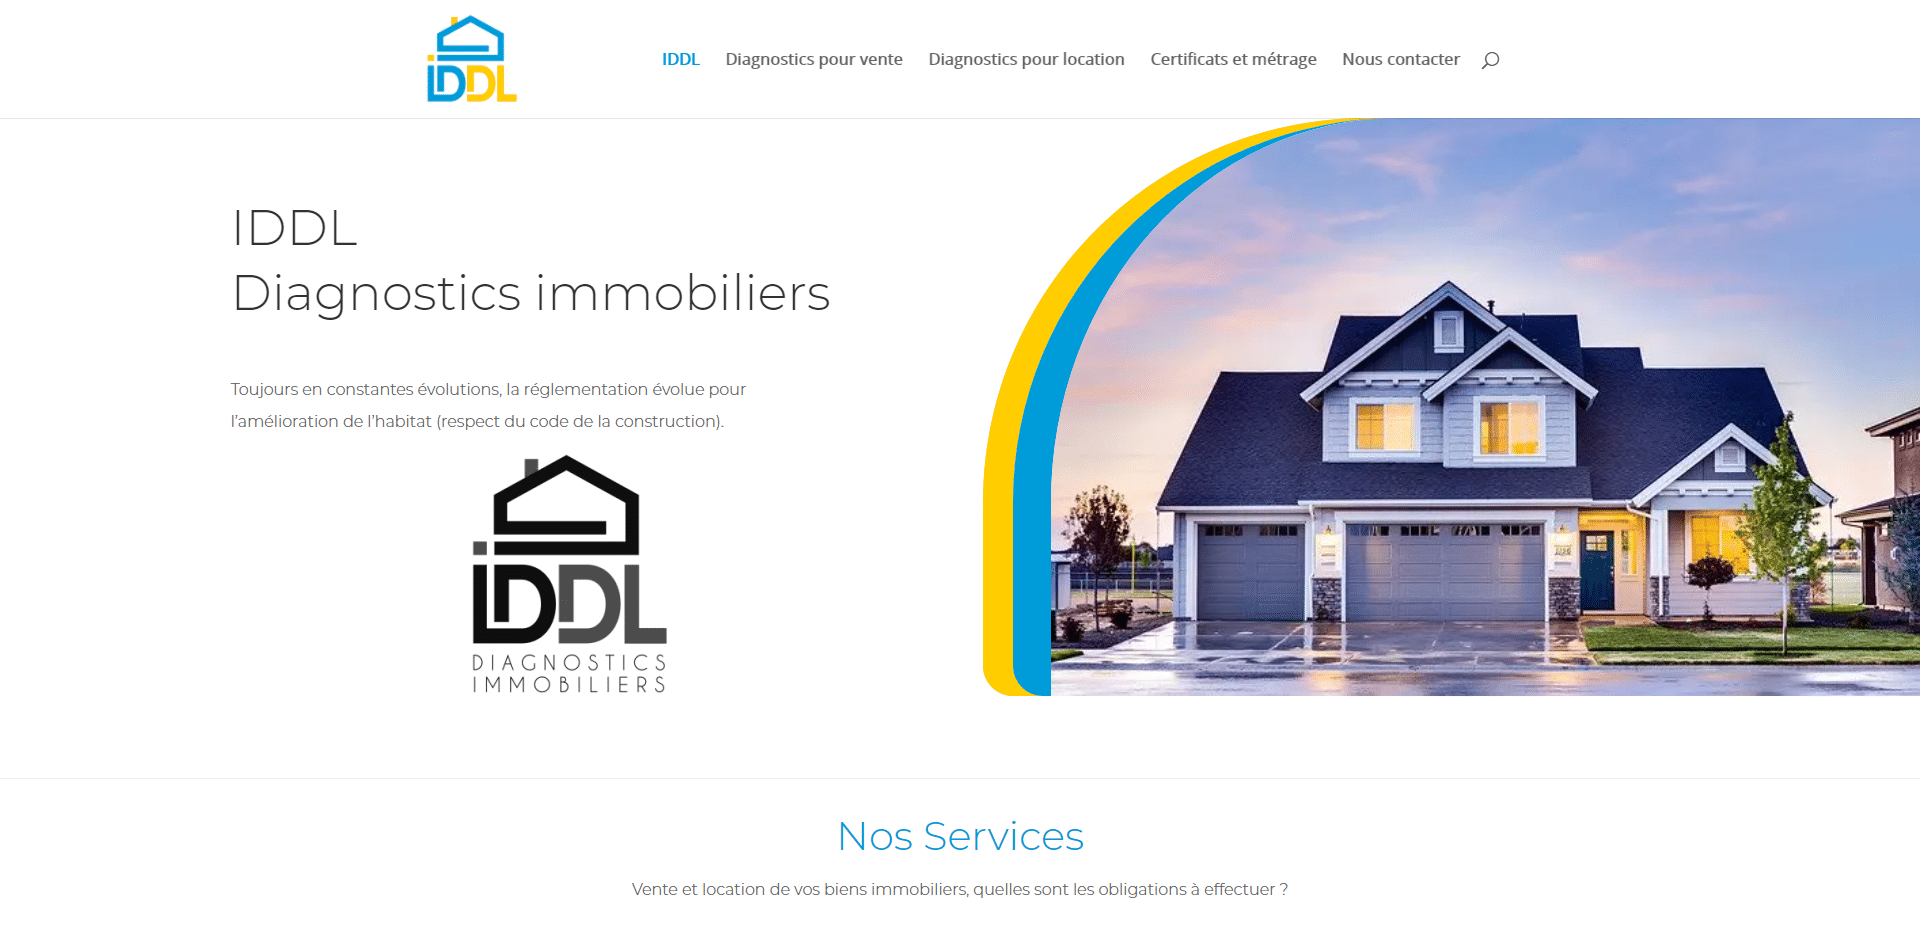 IDDl Diagnostics Immobiliers